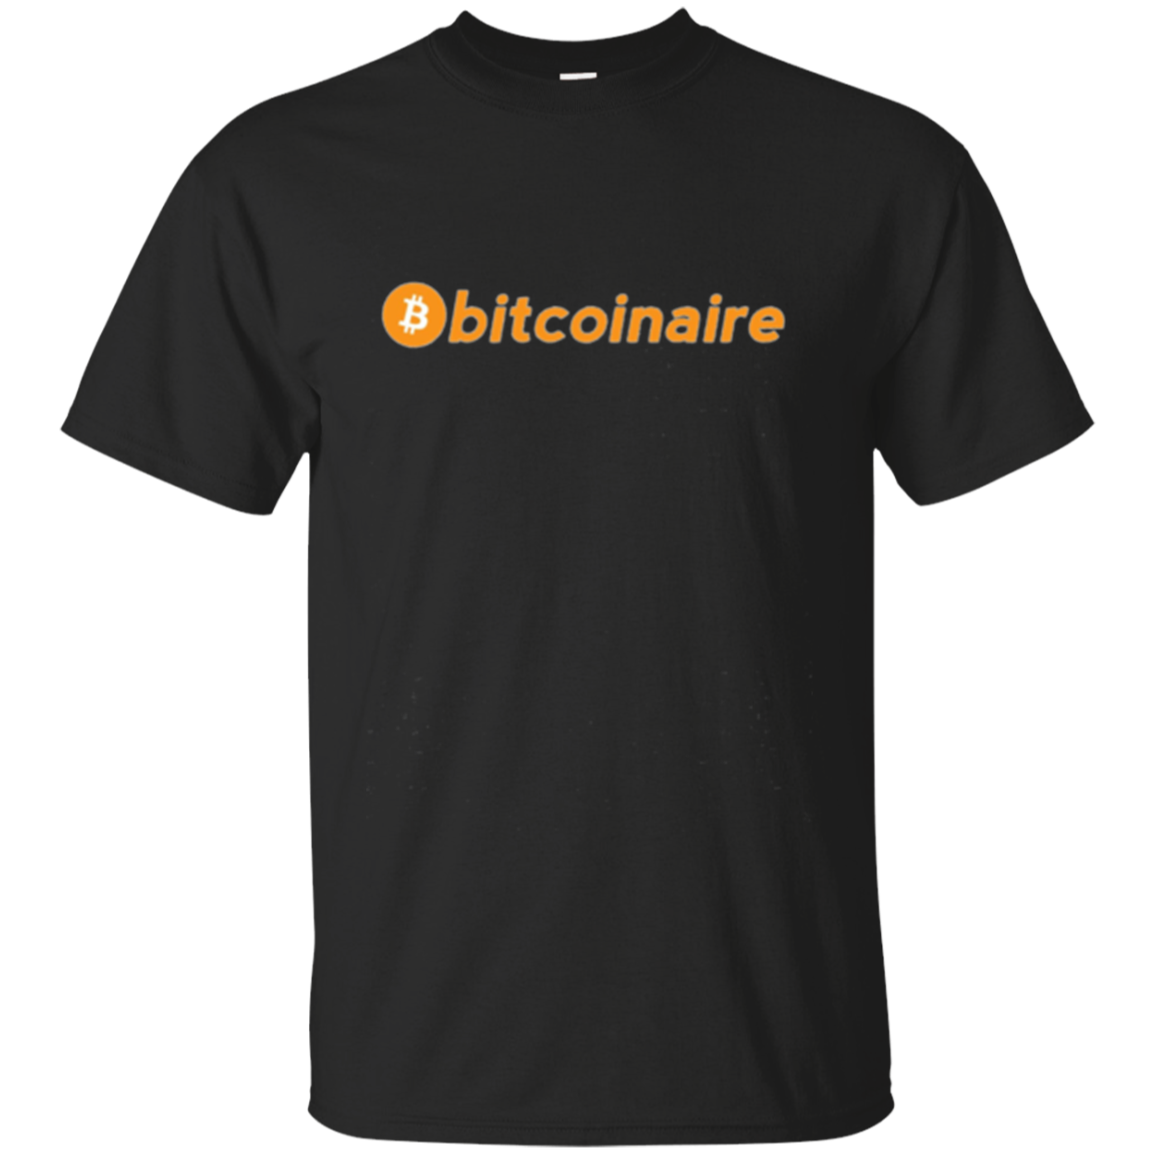 Bitcoinaire T shirt funny gift for Bitcoin Owner Miner Trade